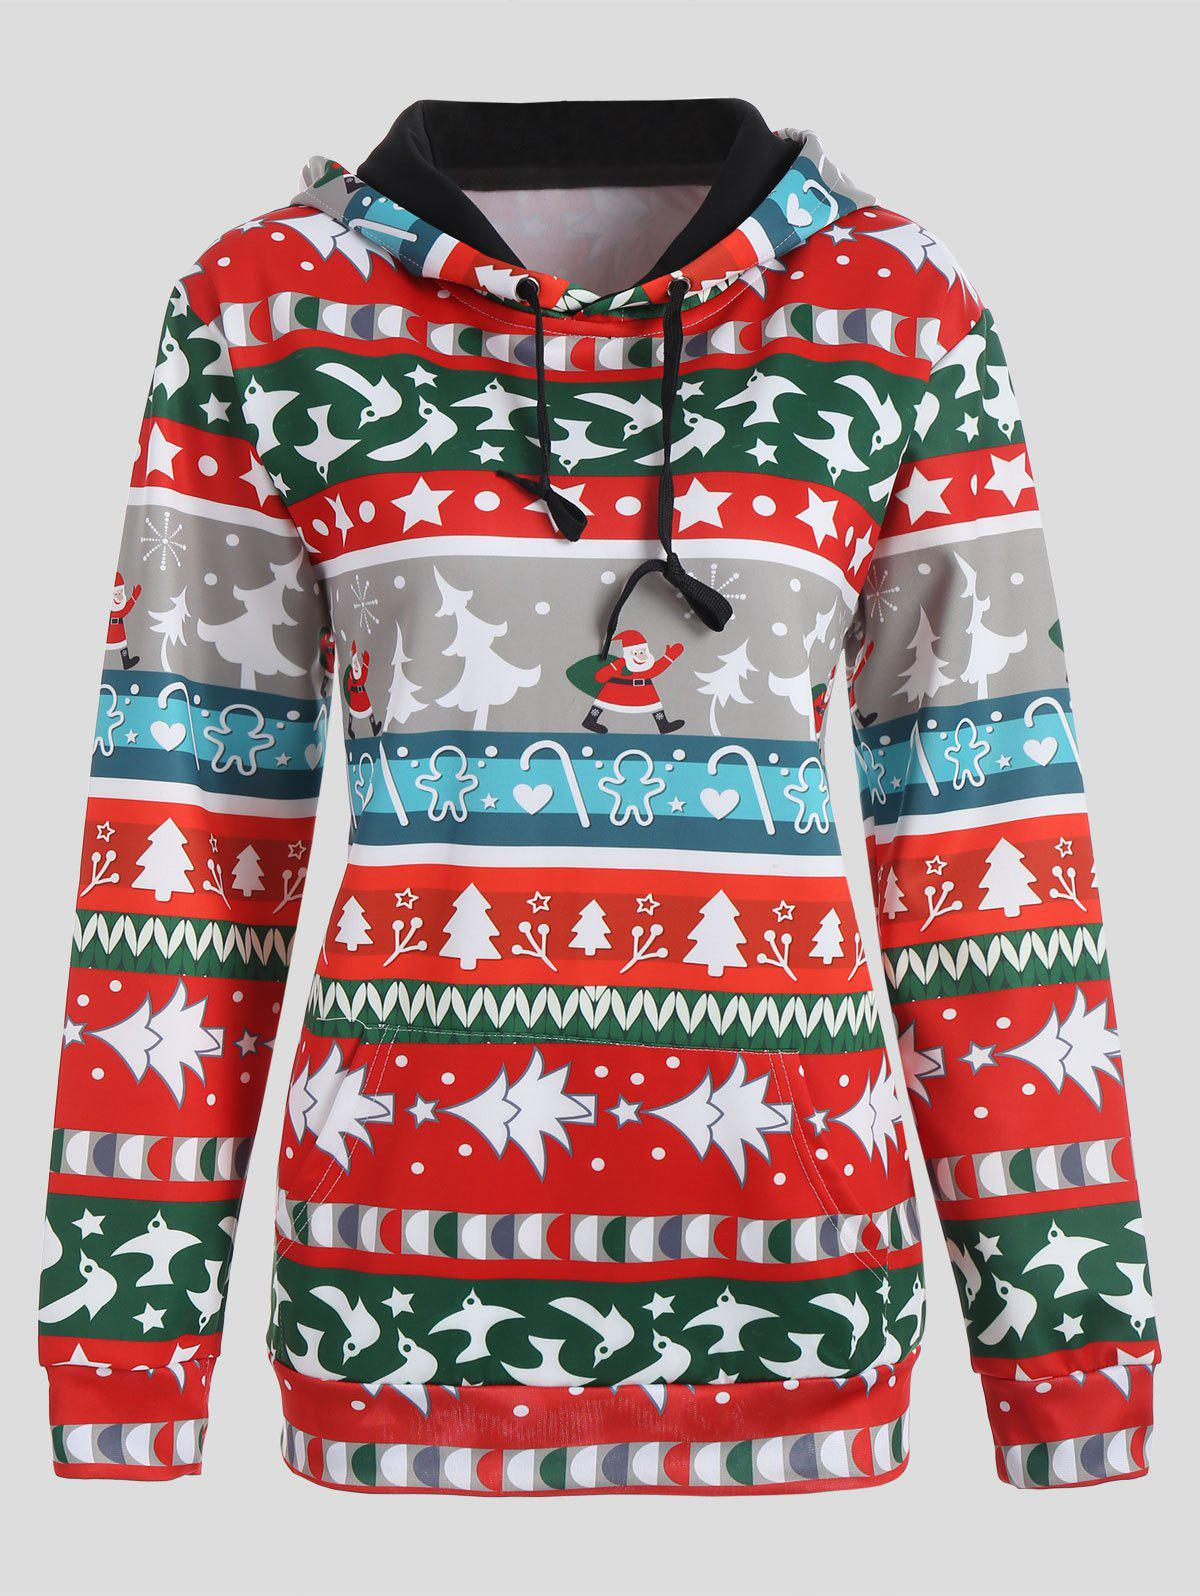 Sweat à Capuche Imprimé Sapin de Noël et Flocon de Neige - multicolore XL